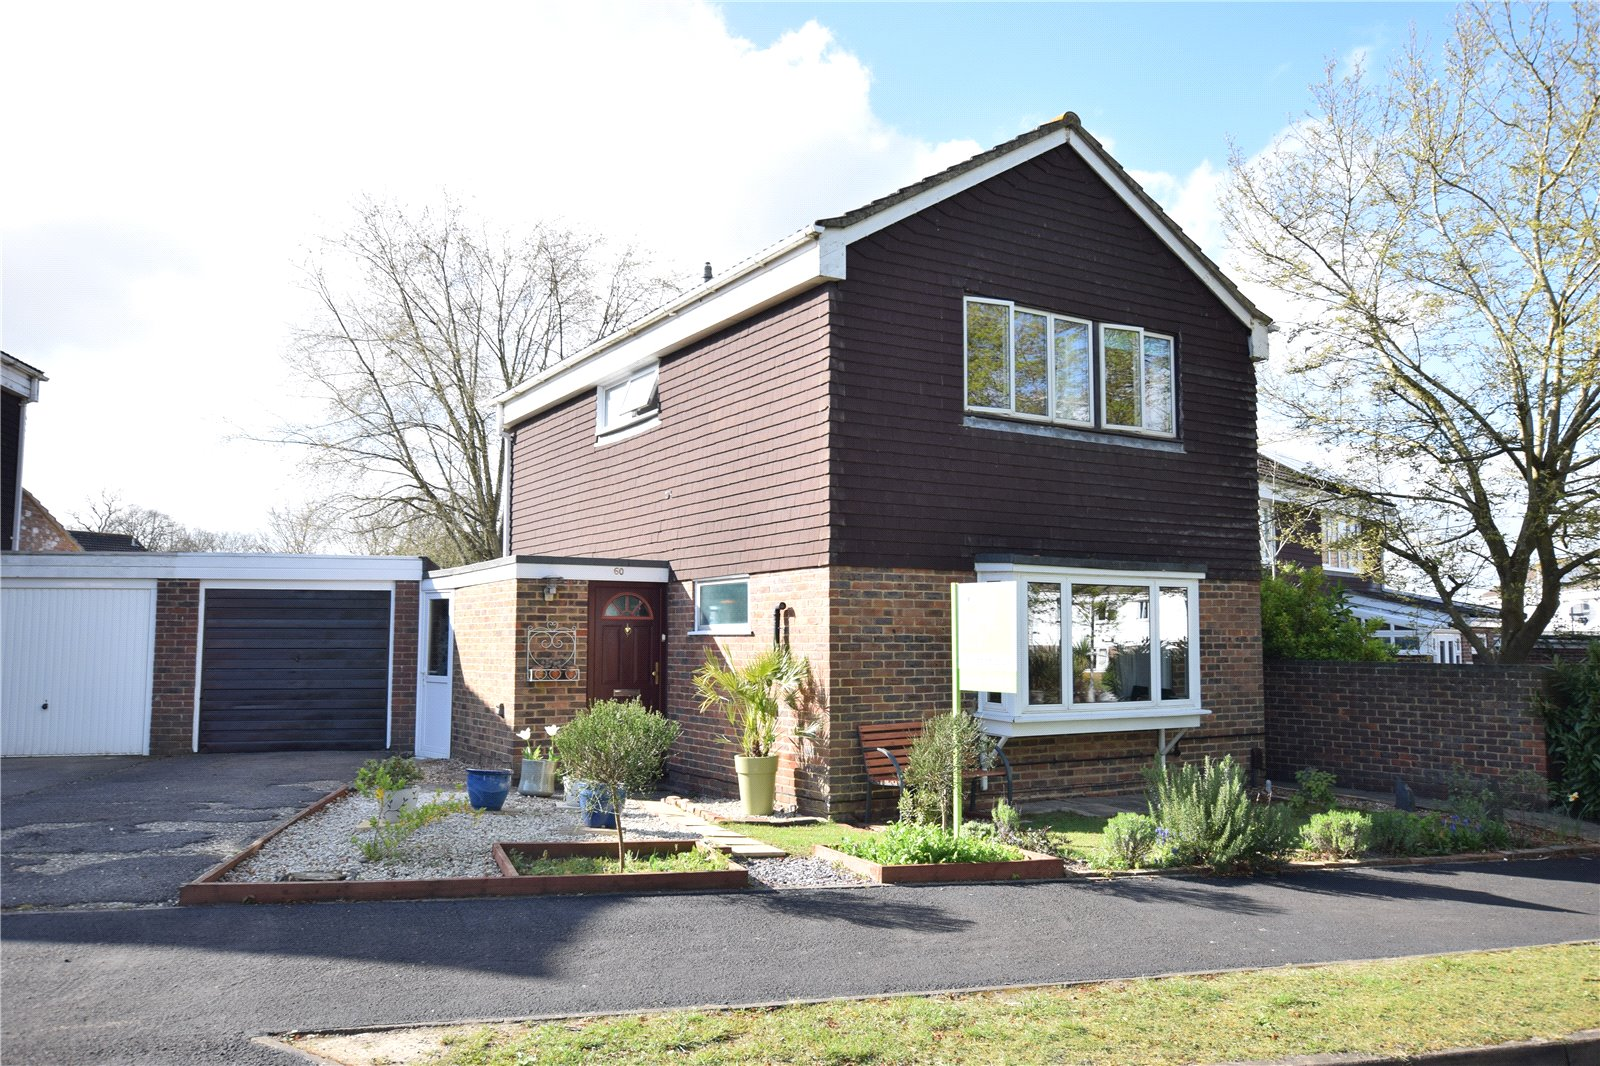 3 Bedrooms Detached House for sale in Staplehurst, Bracknell, Berkshire, RG12